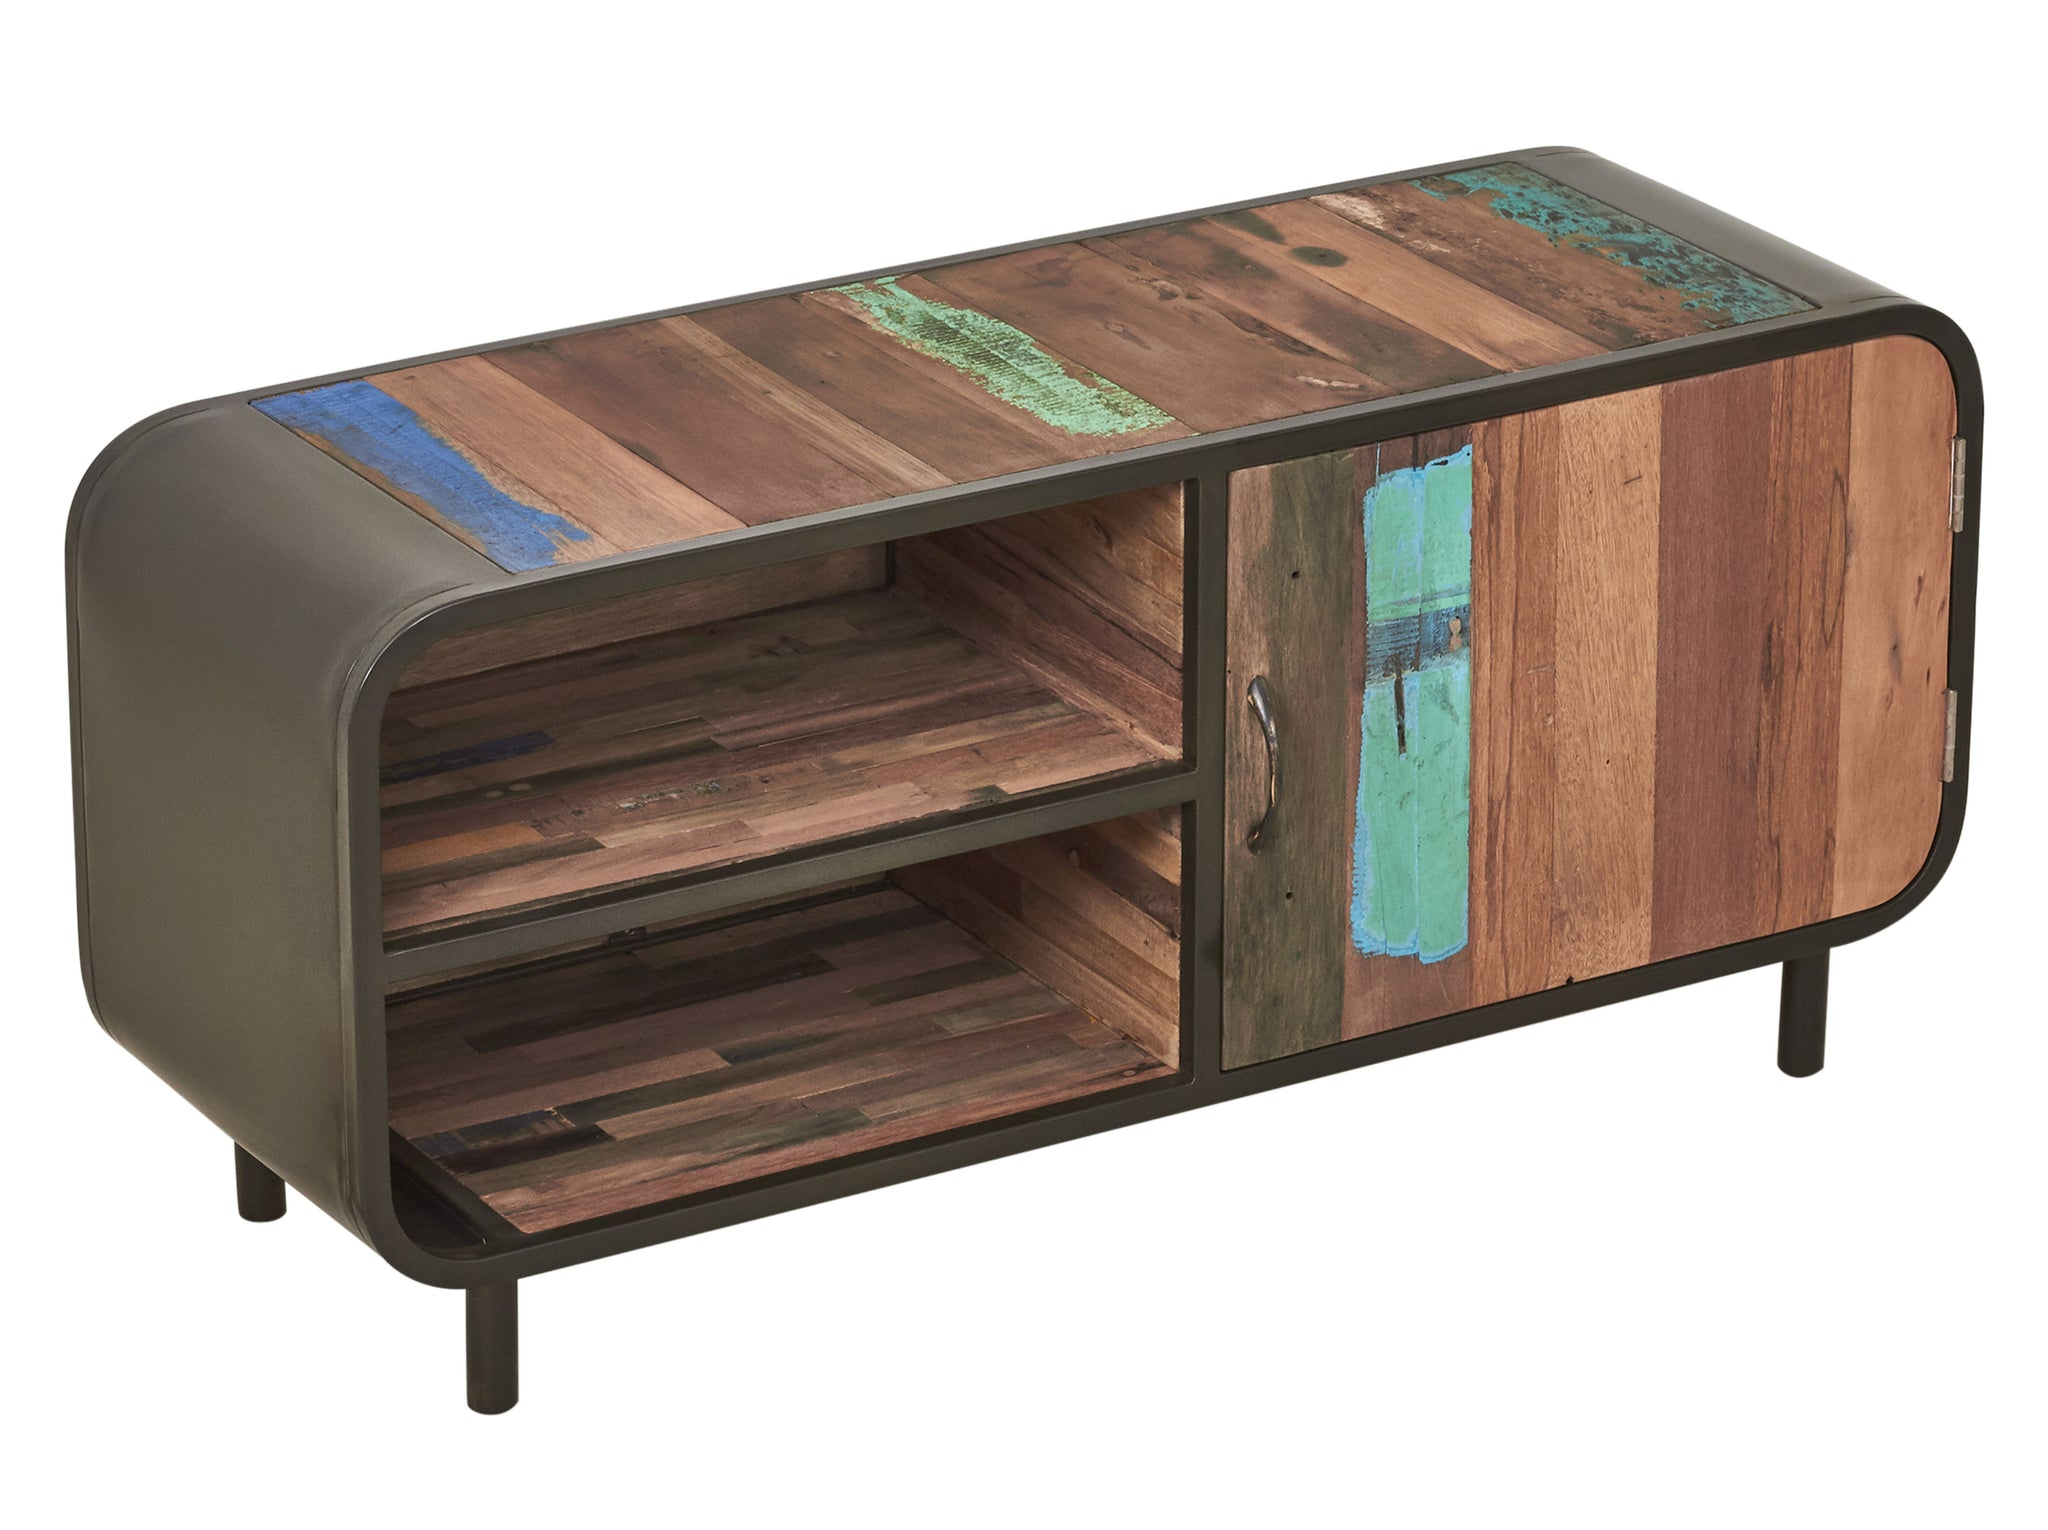 Mid century modern style tv entertainment or gaming console made from salvaged fishing boat wood and